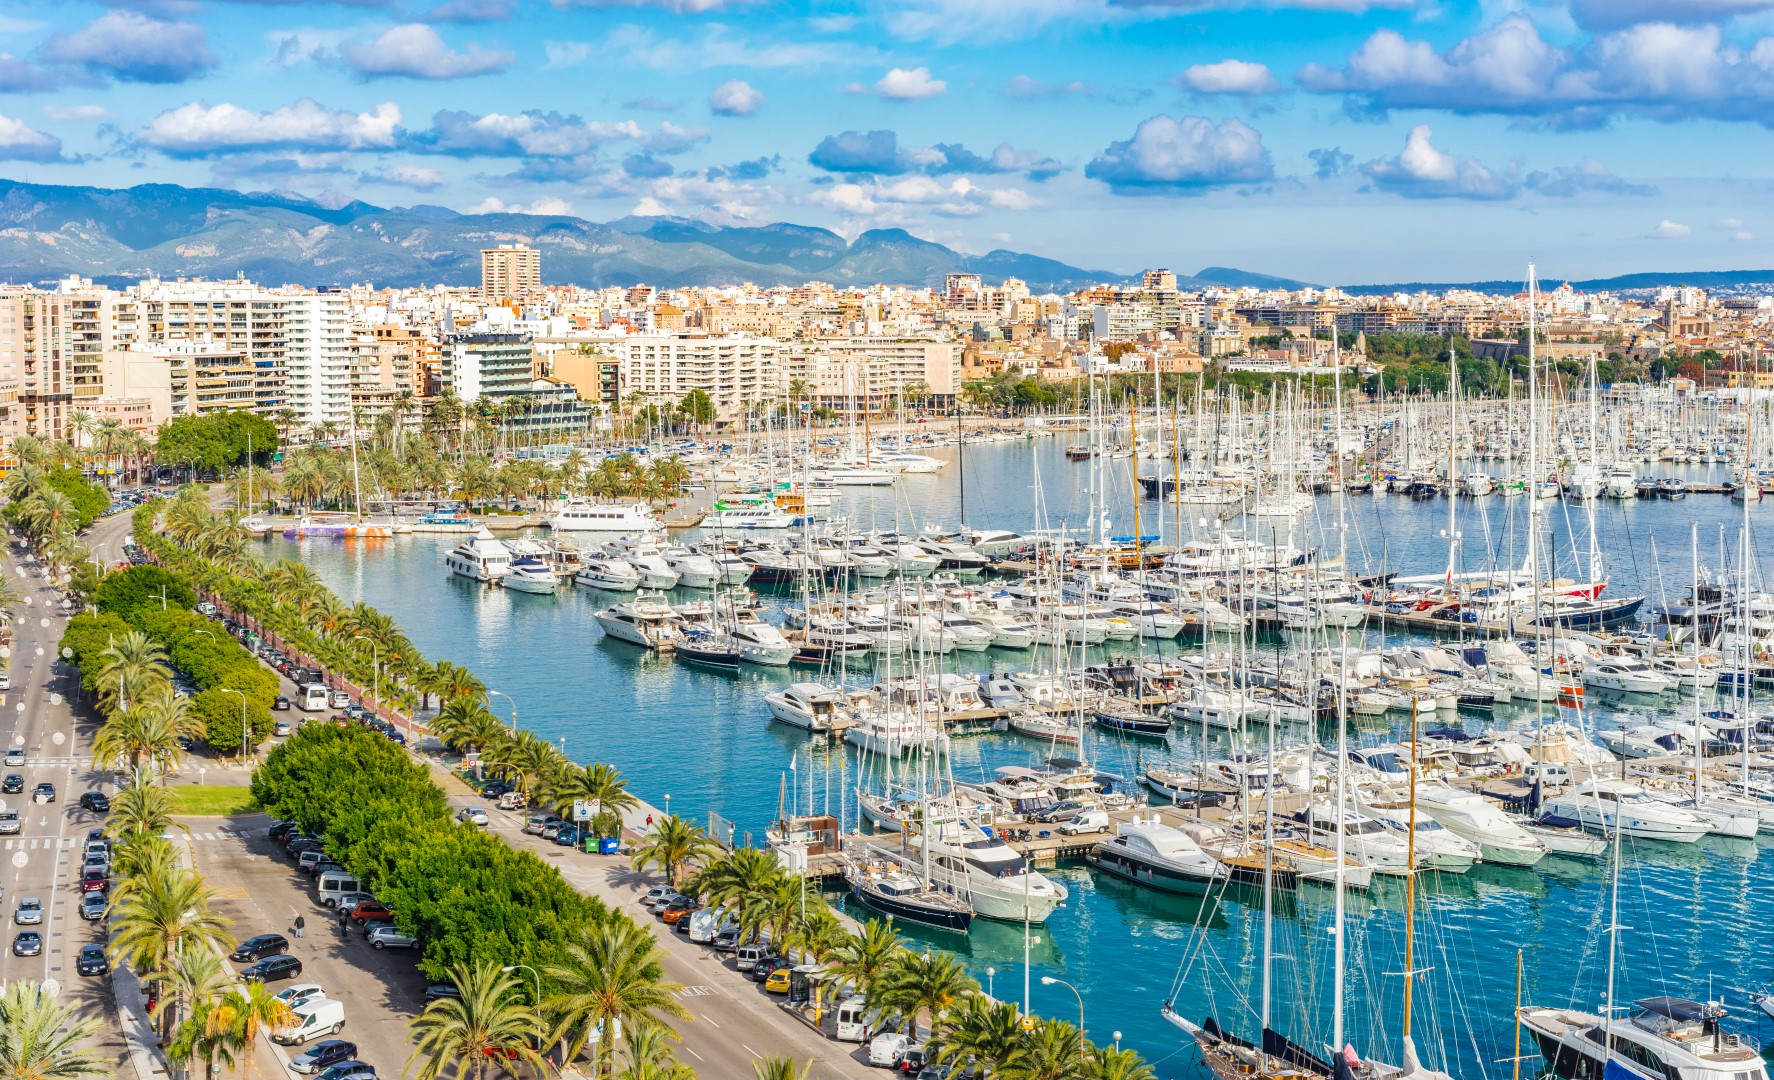 Club de Mar Marina Mallorca